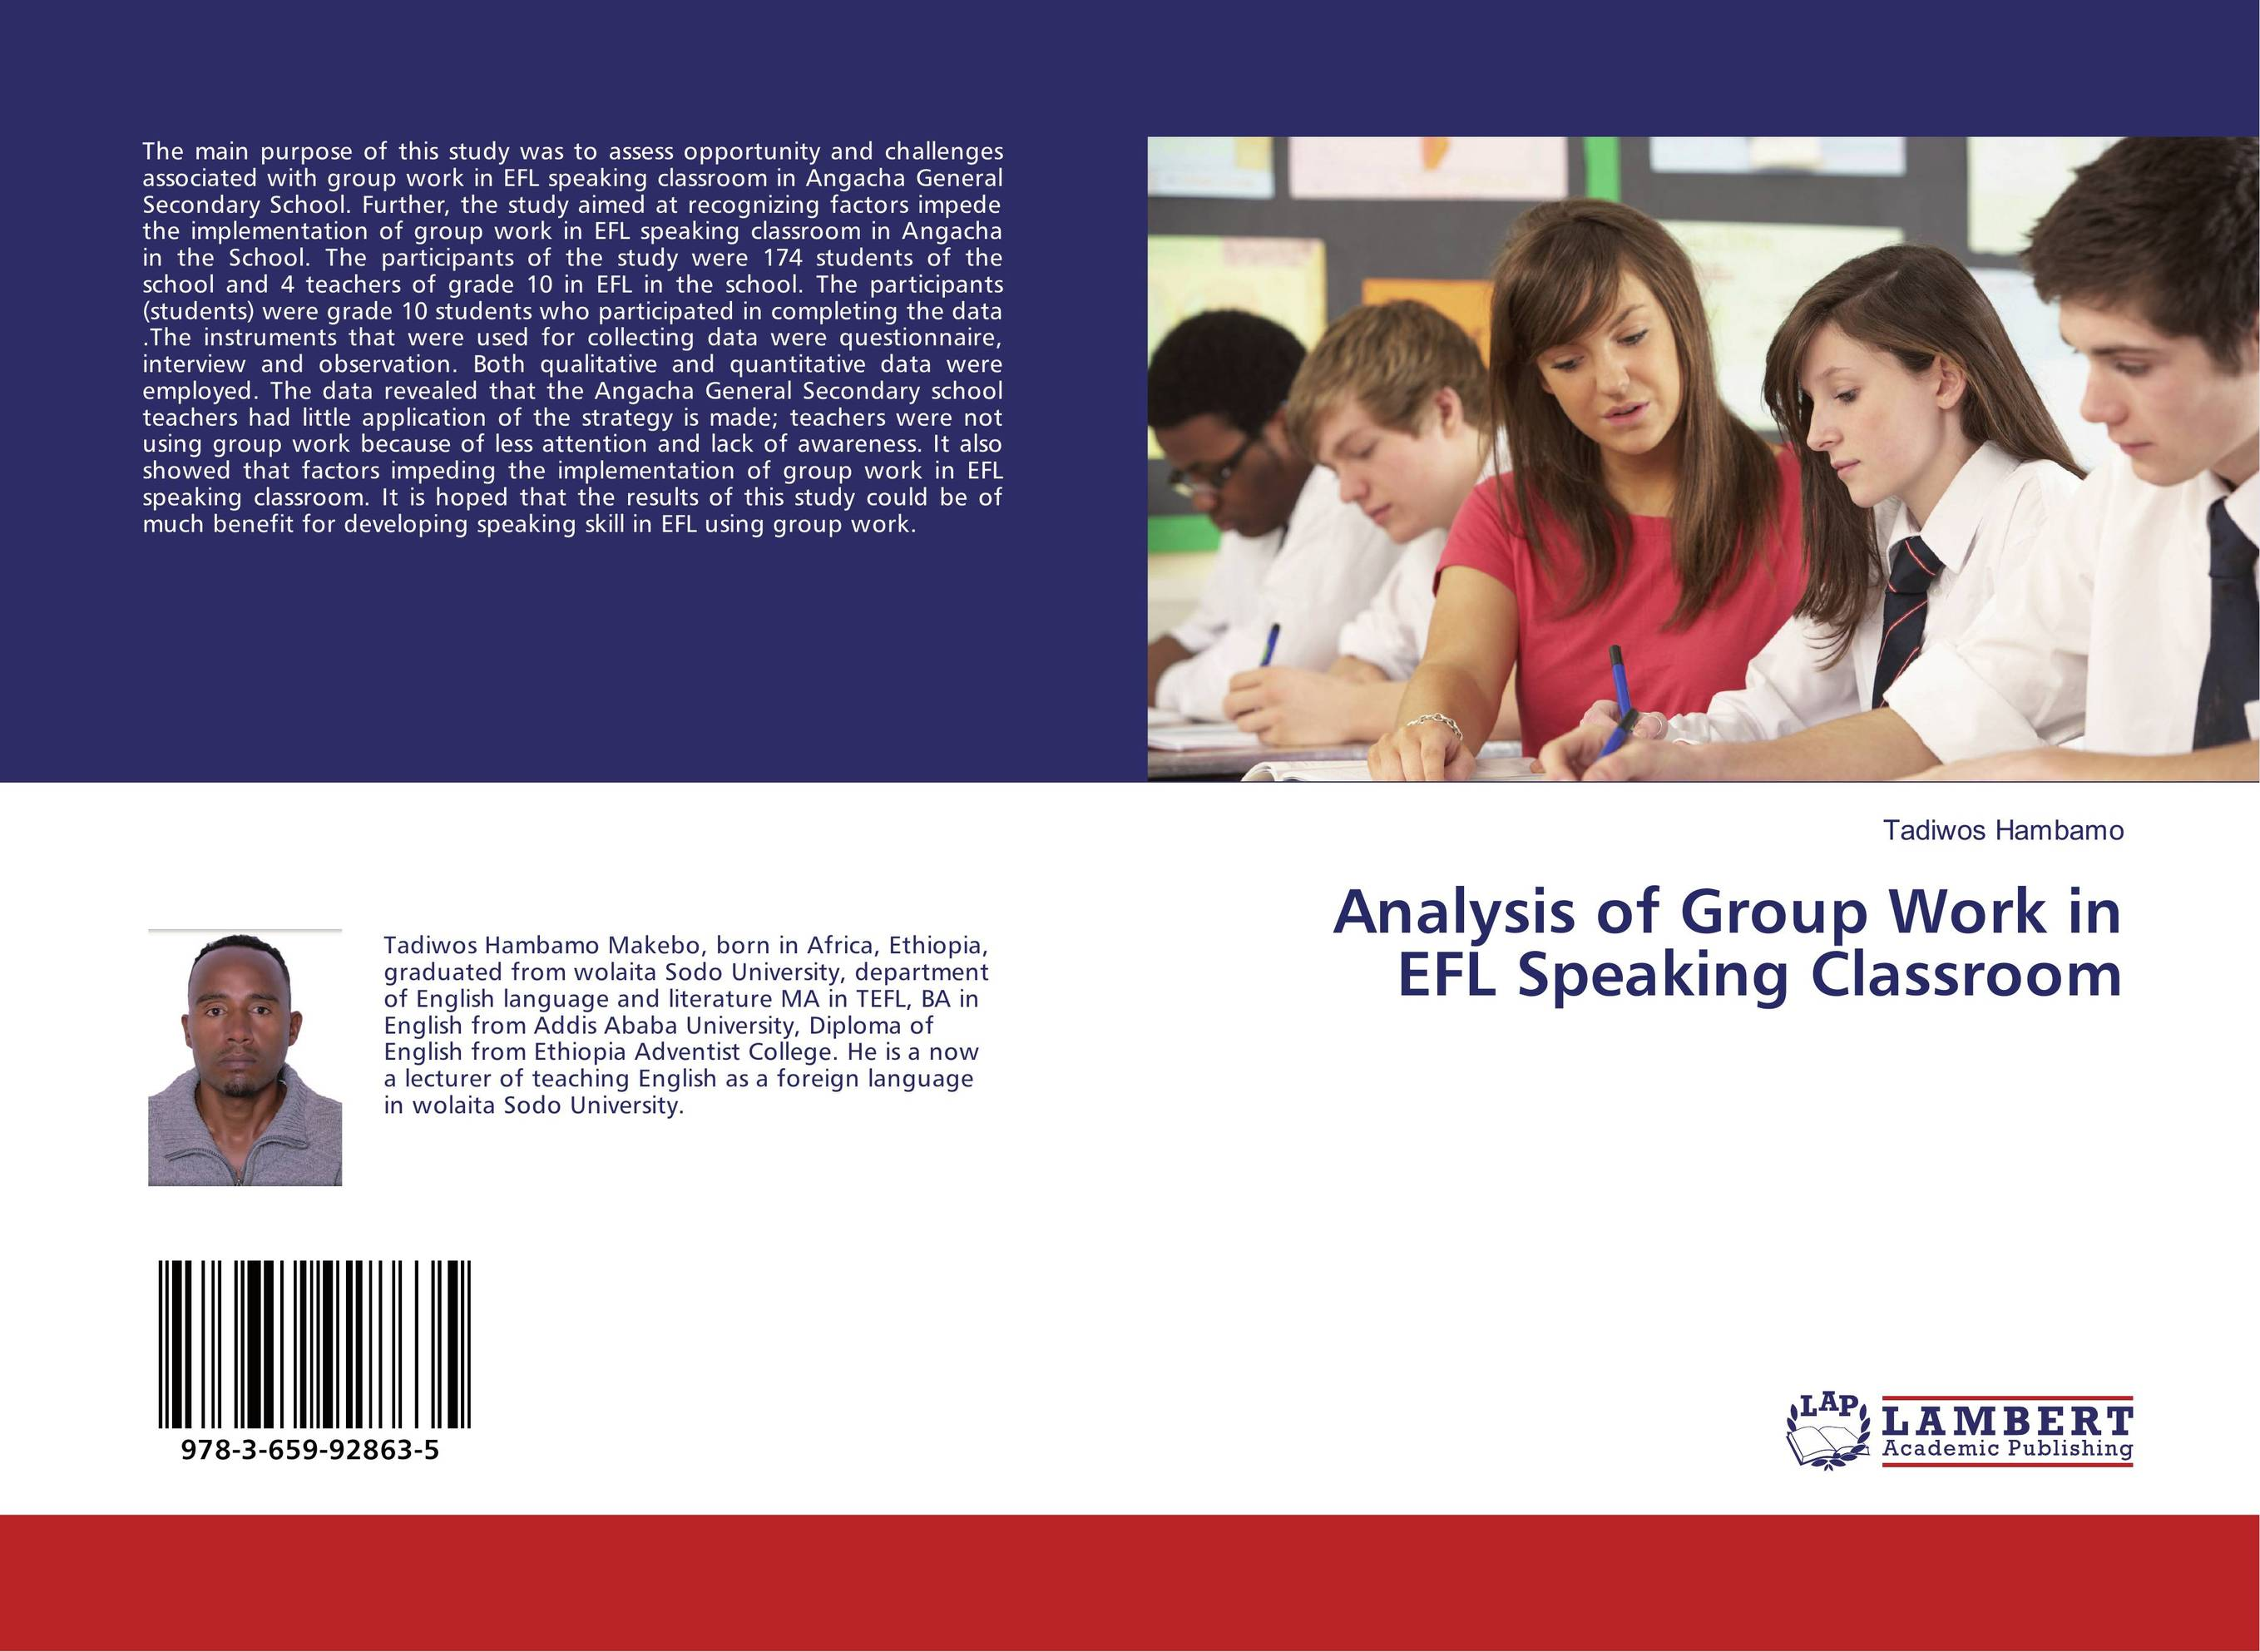 a study on developing speaking skill Of english reading skills and english writing skills, a career would be somewhat limited if it involves doing business in english-speaking countries at even a basic level.